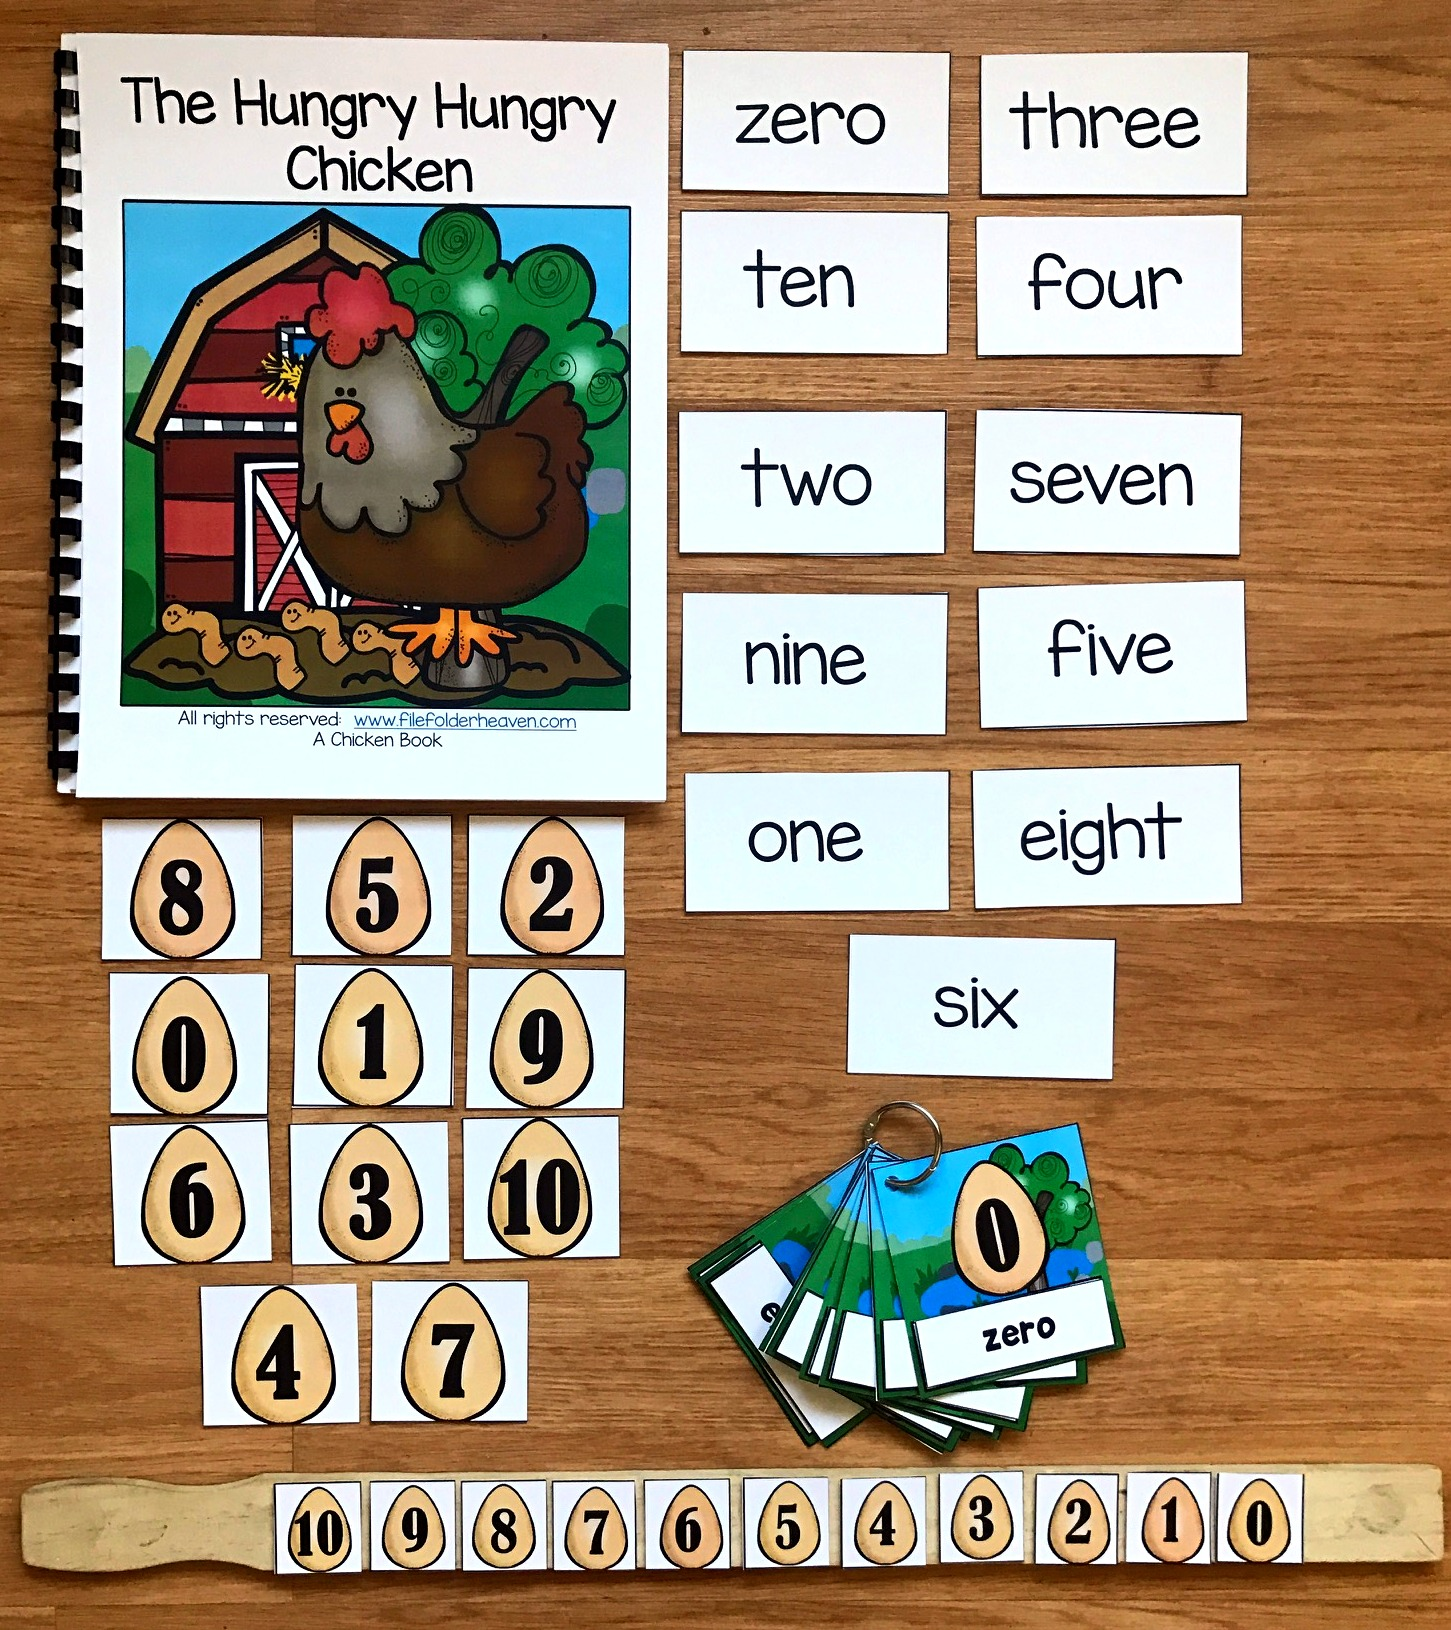 The Hungry Hungry Chicken Adapted Book and Vocabulary Activities